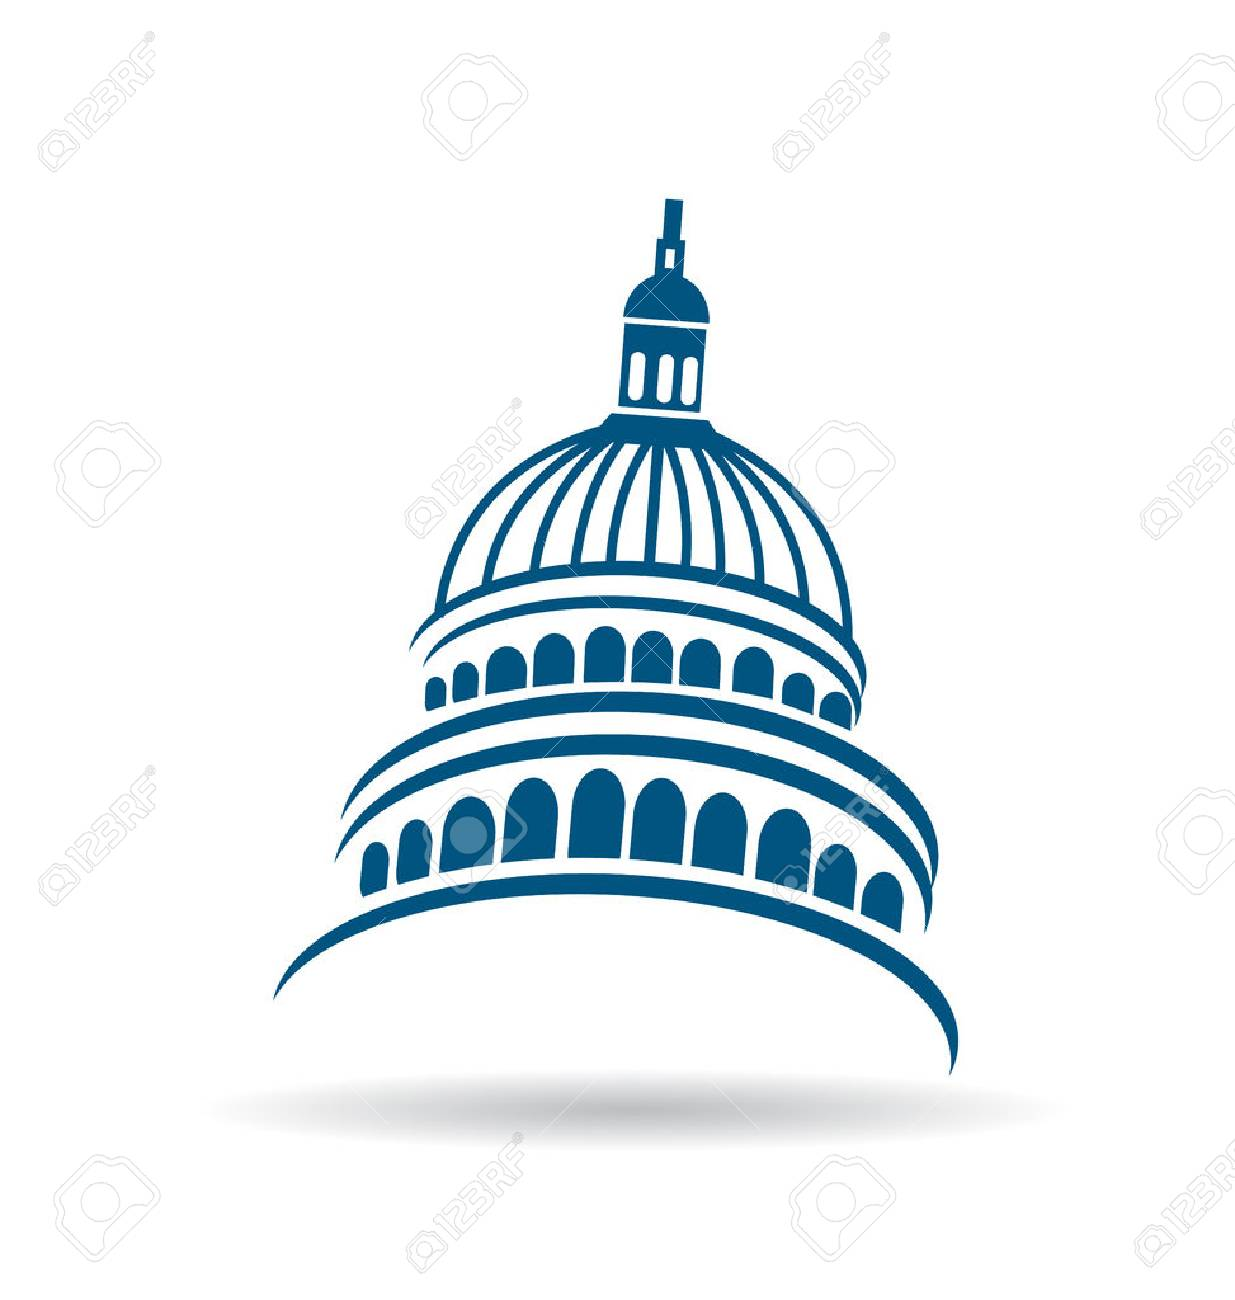 usa capitol building icon royalty free cliparts vectors and stock rh 123rf com capitol building vector artwork capitol building vector artwork